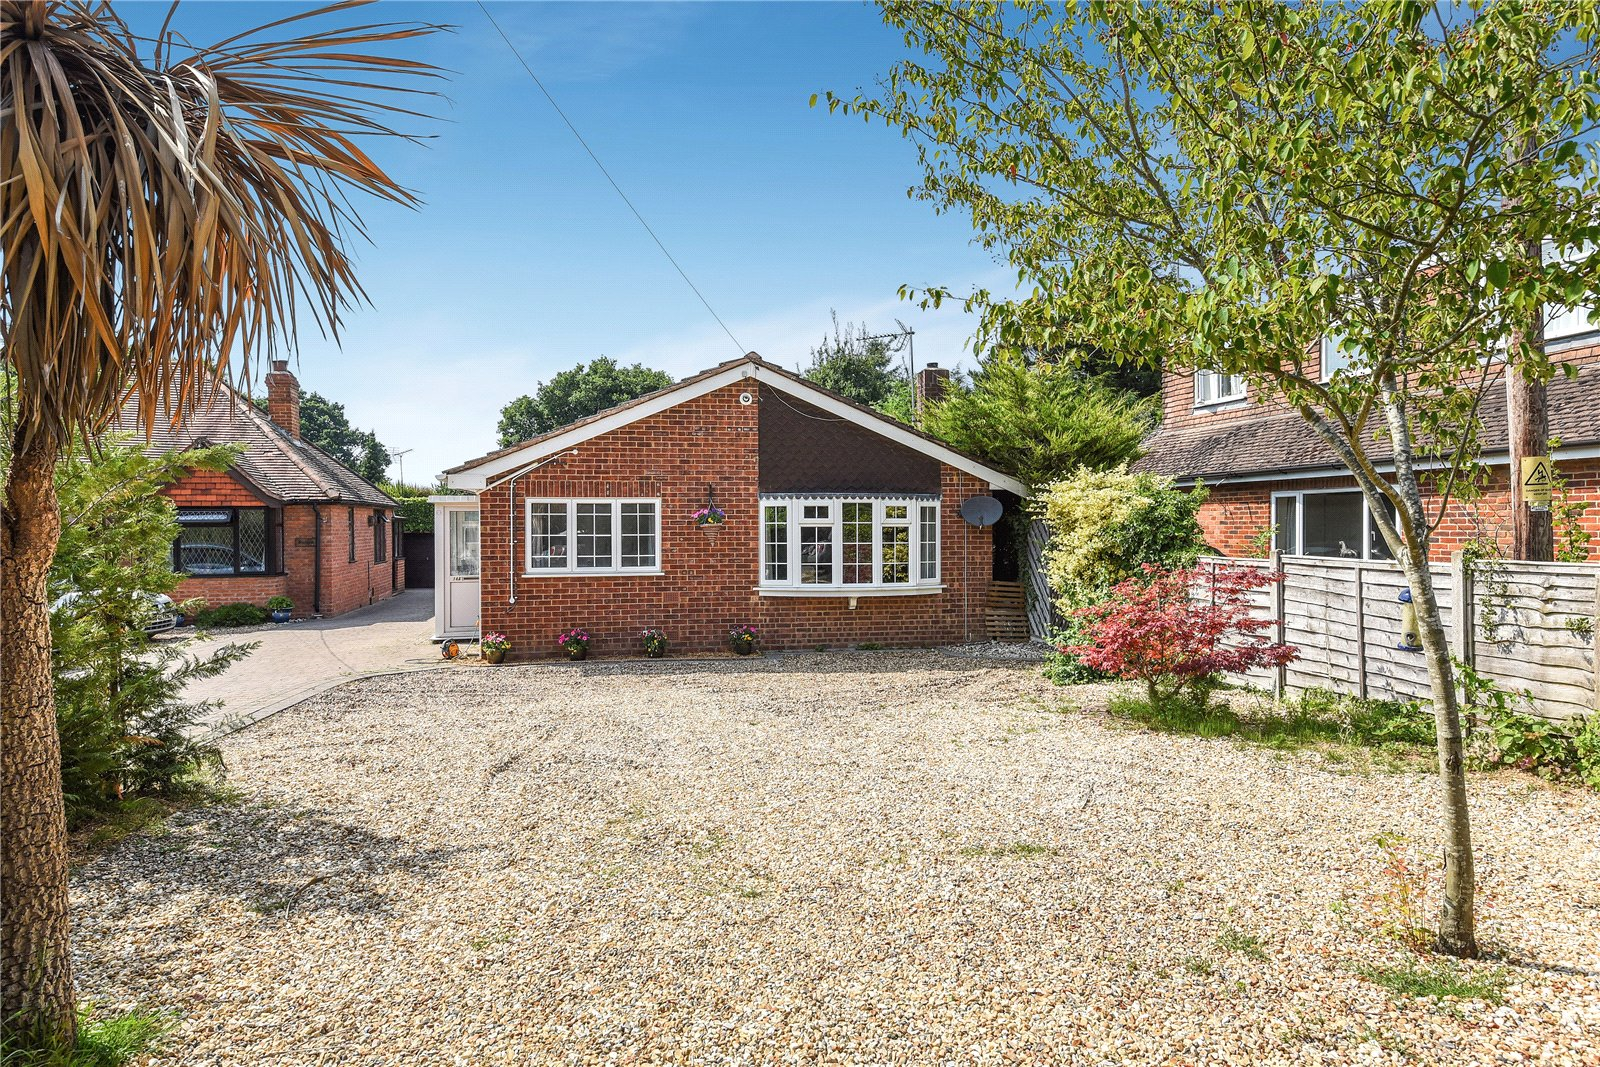 4 Bedrooms Detached House for sale in Langley Common Road, Barkham, Wokingham, Berkshire, RG40